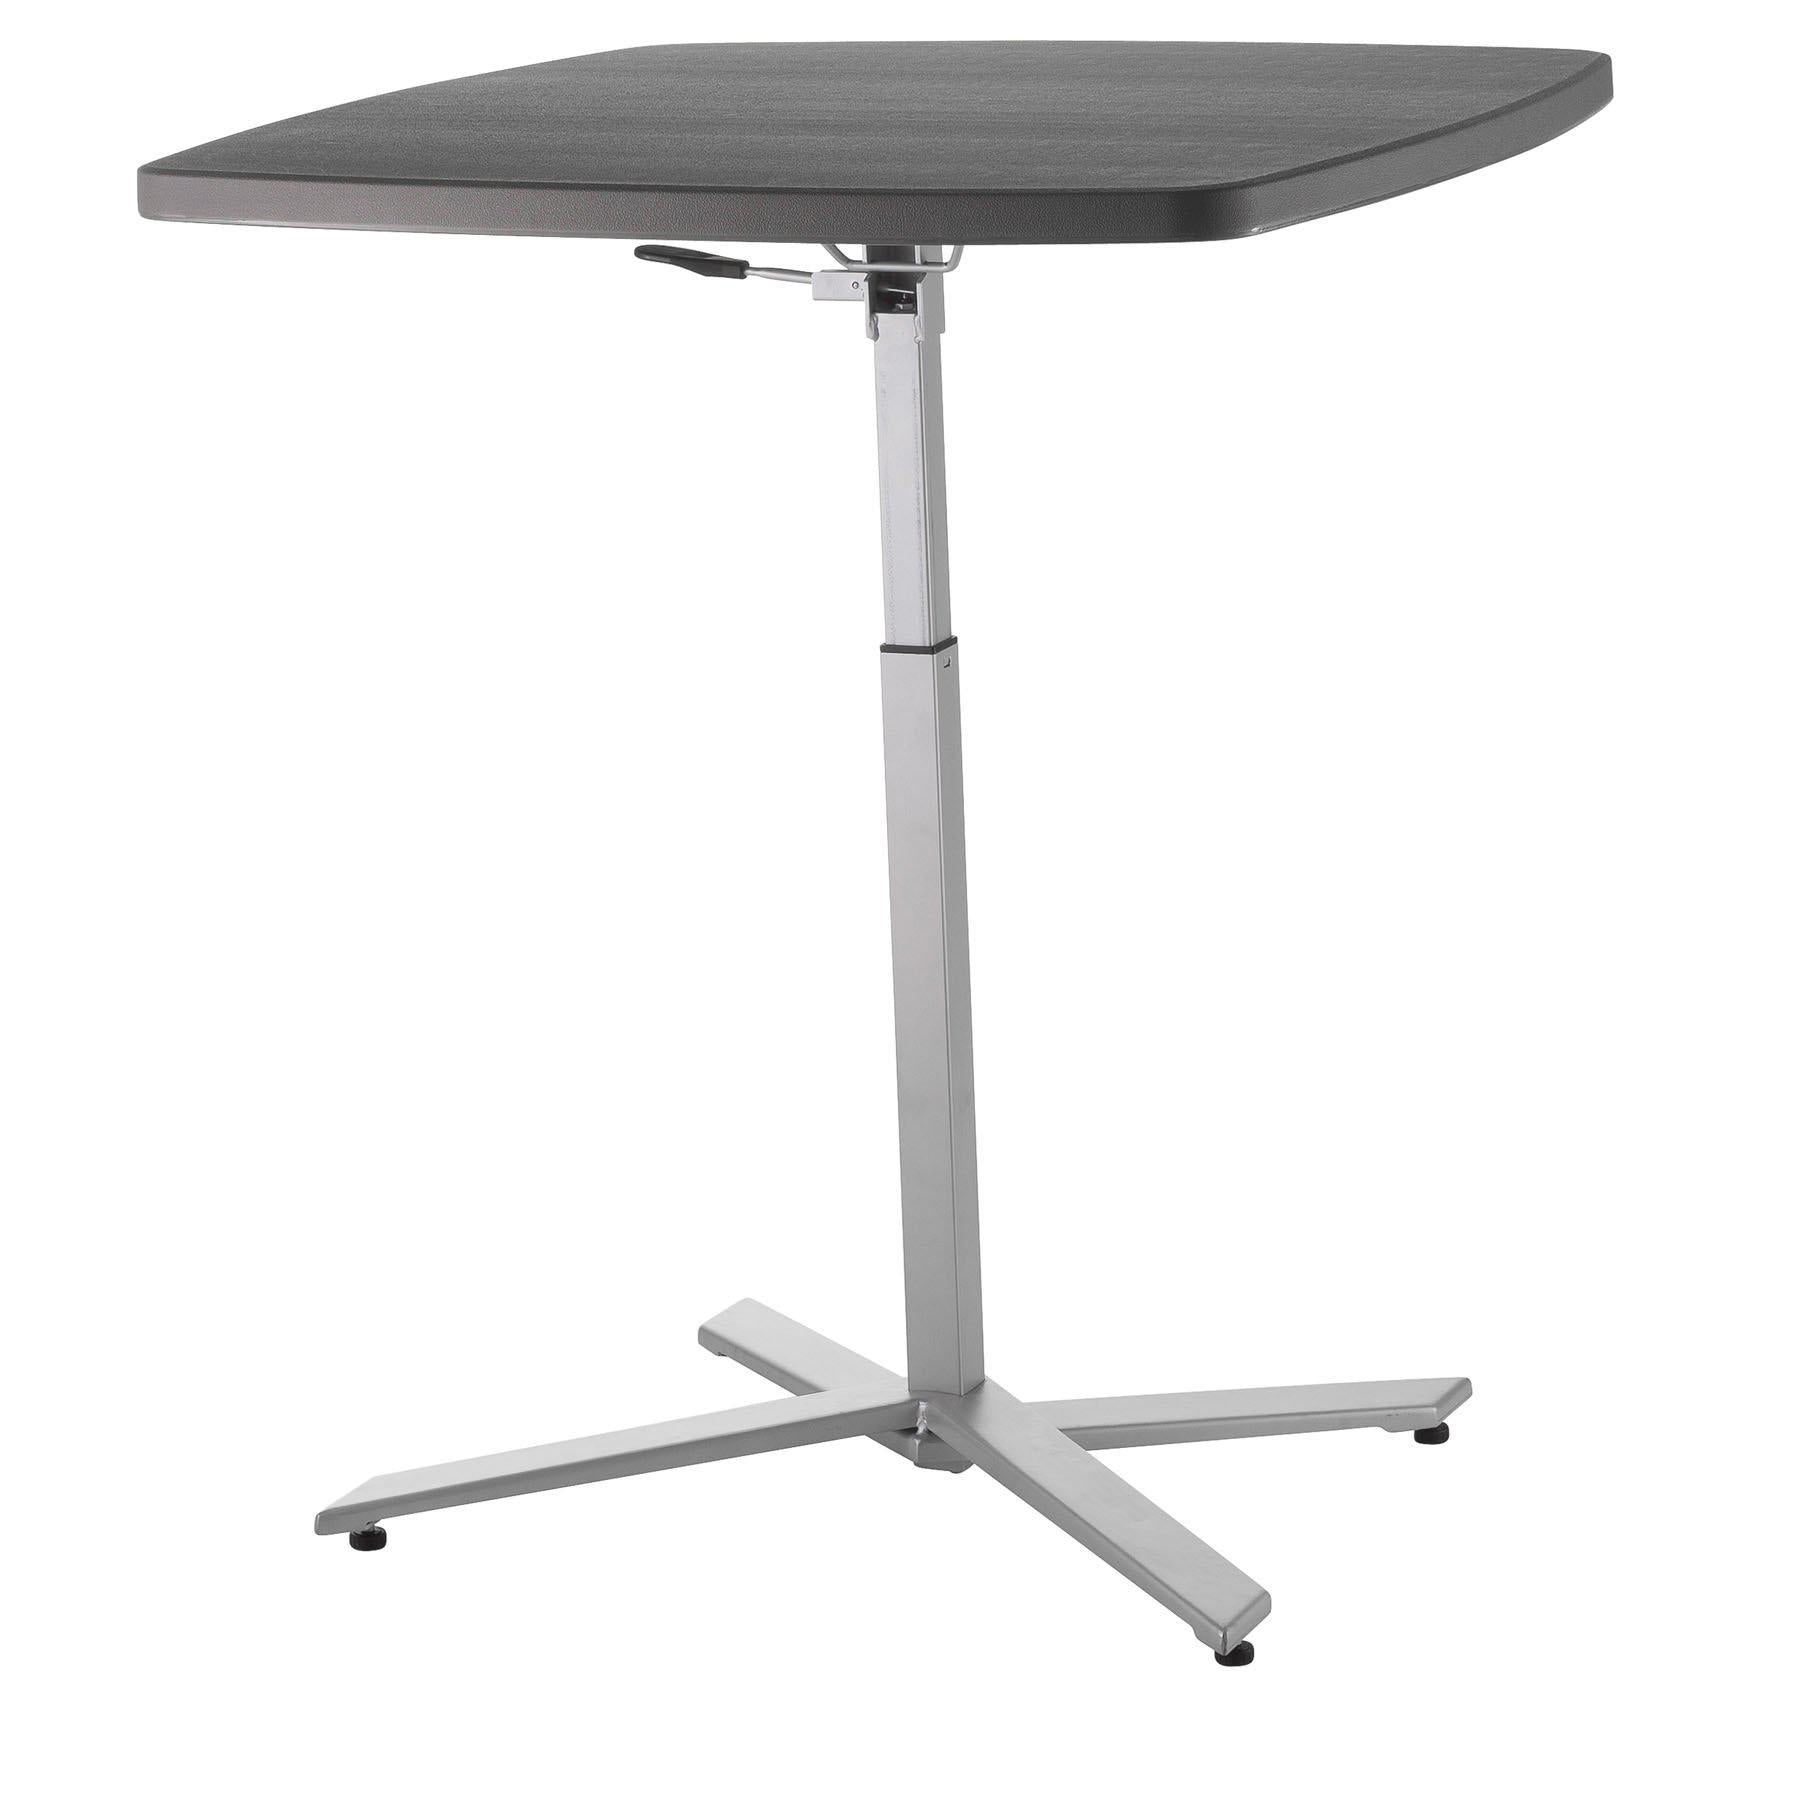 Cafe Time Adjustable-Height Table, Charcoal Slate Top & Silver Frame-Stools-